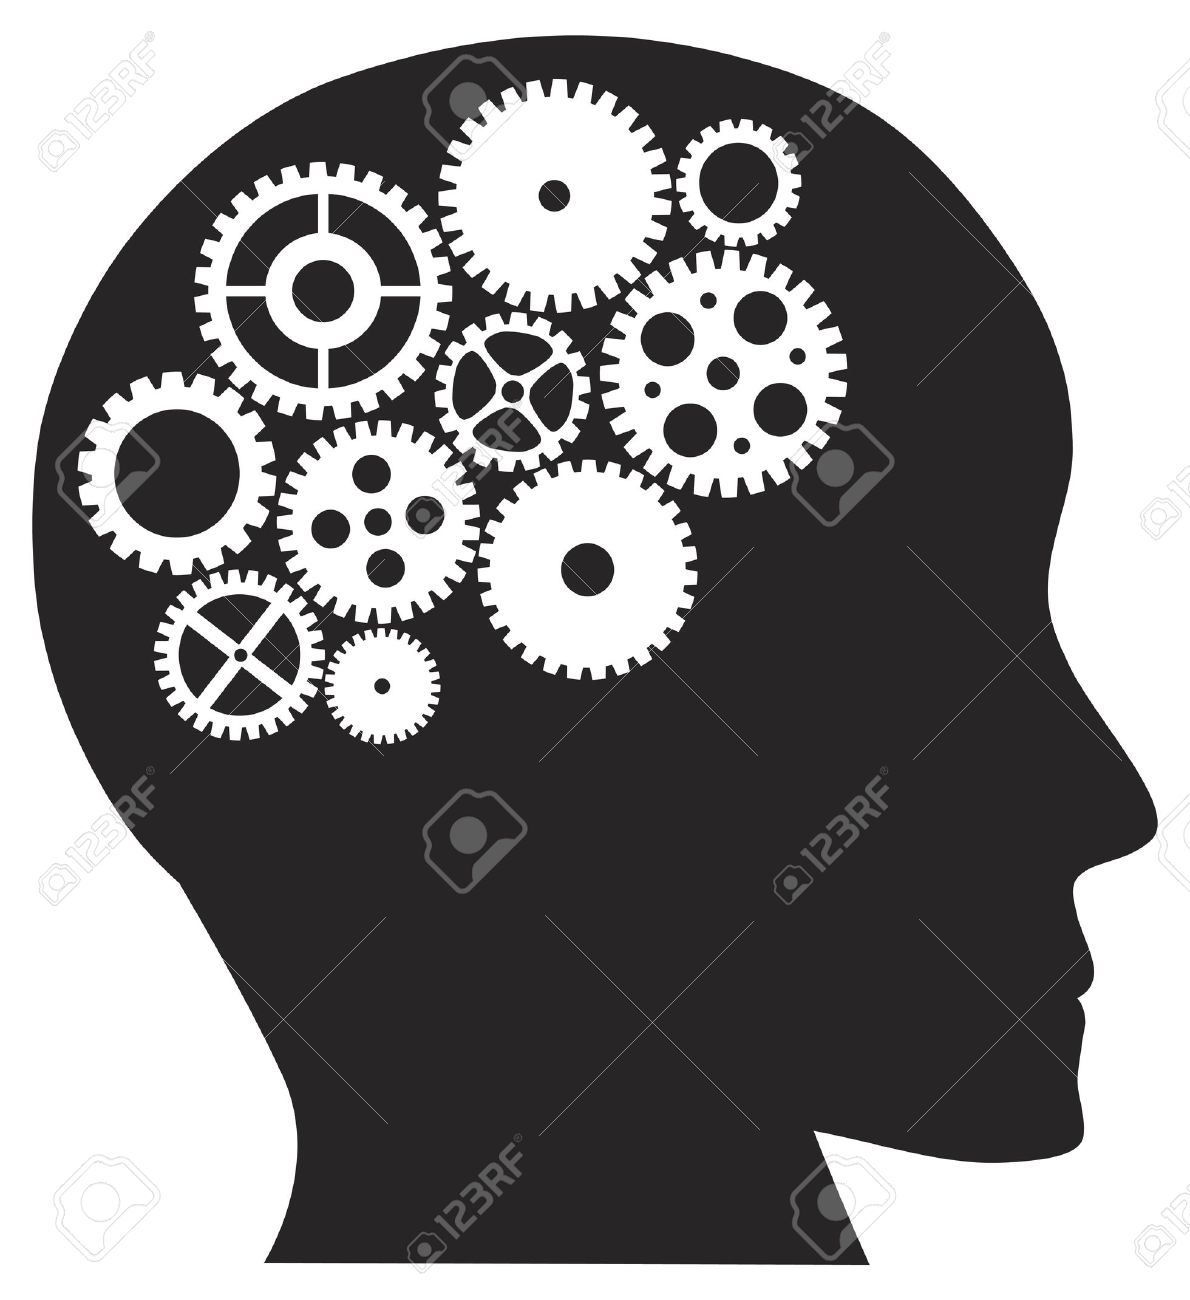 Human Head Silhouette with Metal Mechanical Gears Illustration Isolated on White Background Stock Vector - 16221422